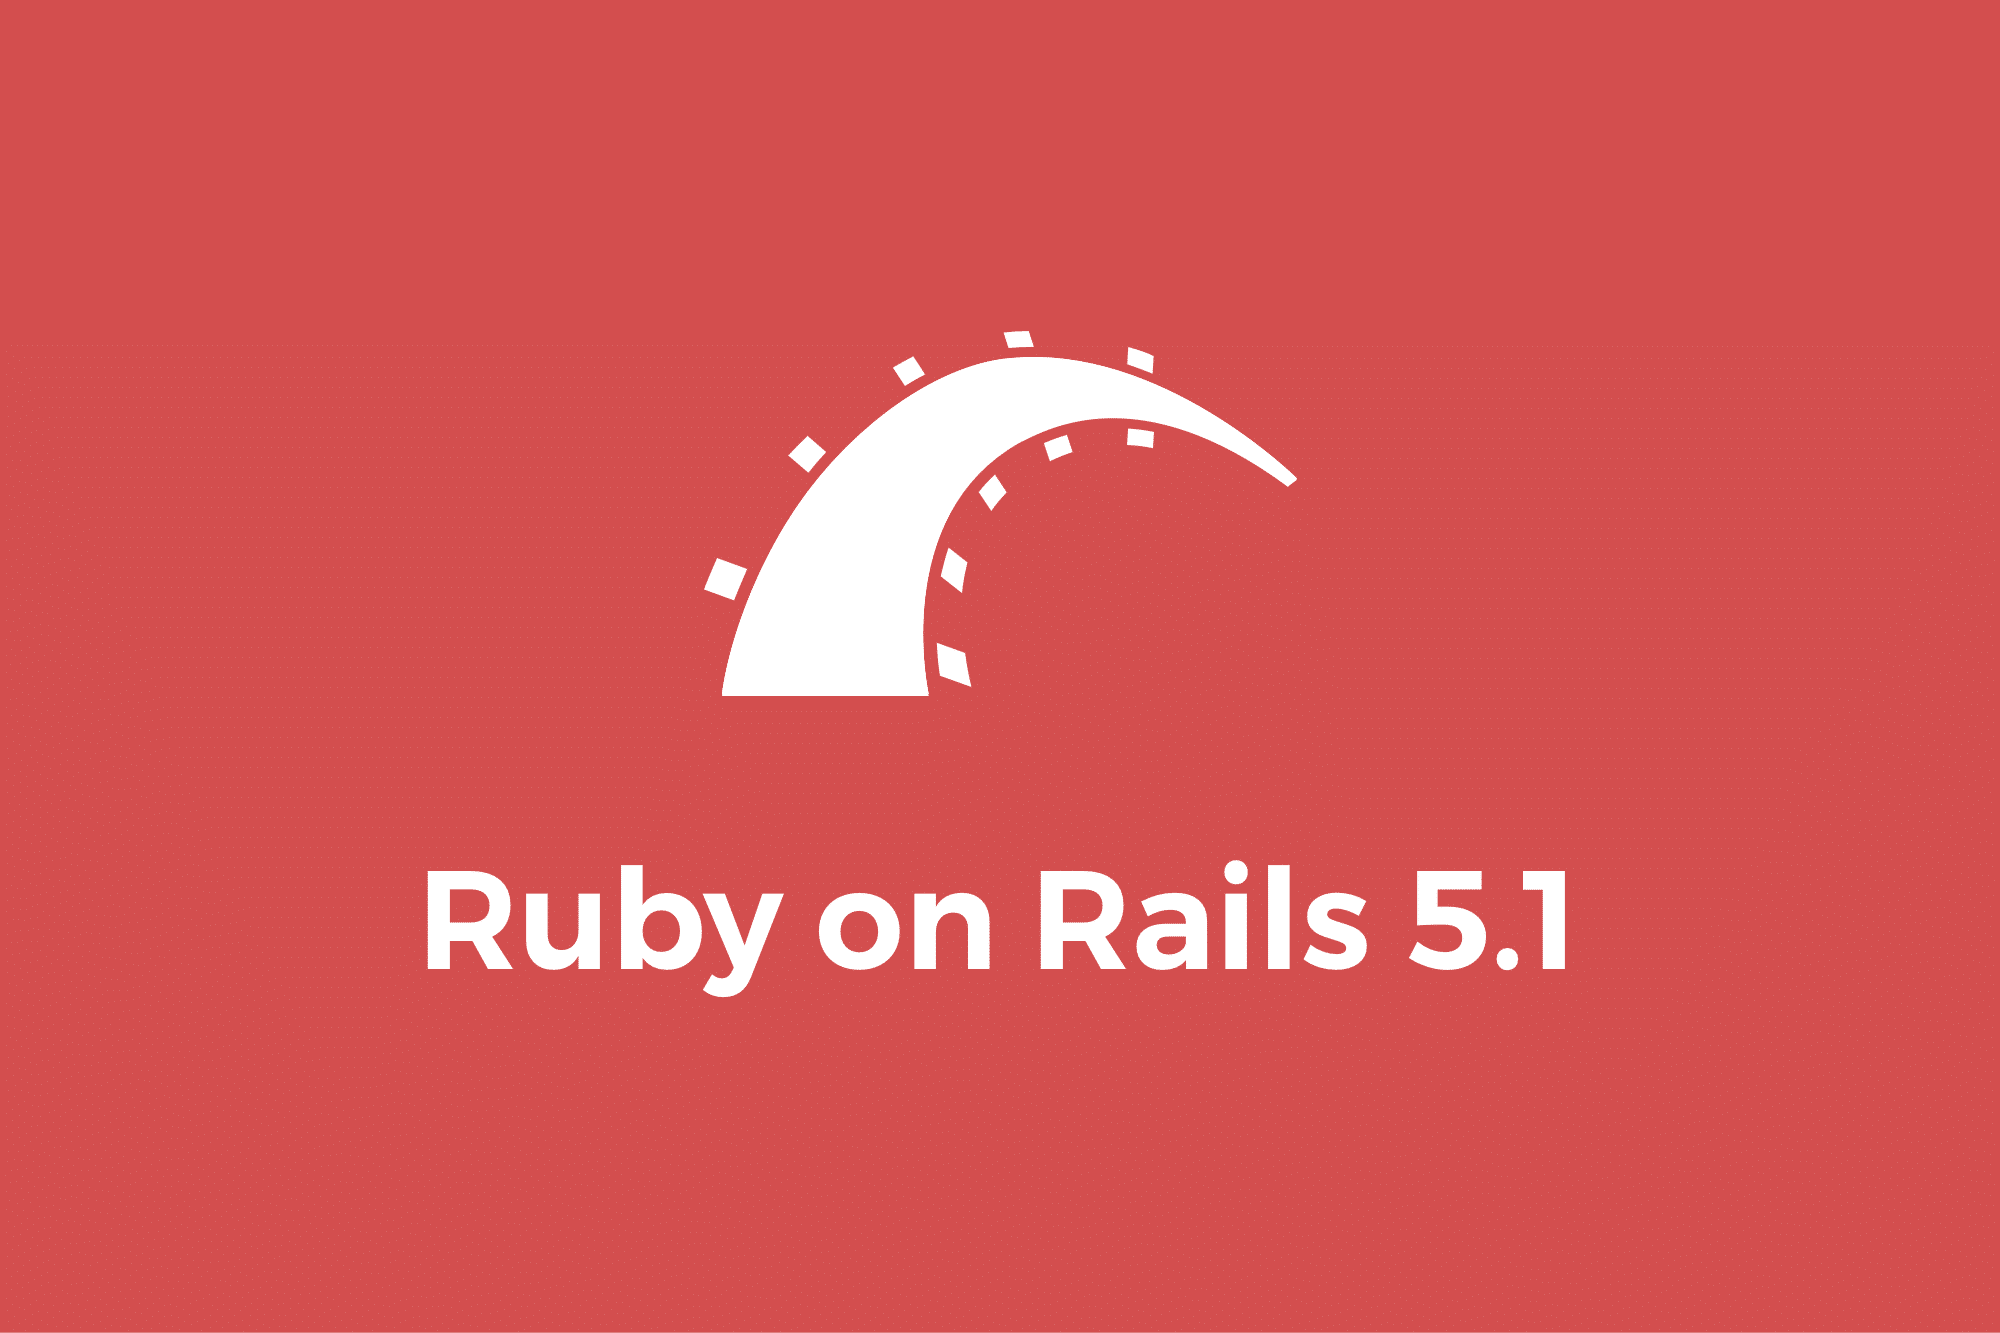 Welcome Ruby on Rails 5.1